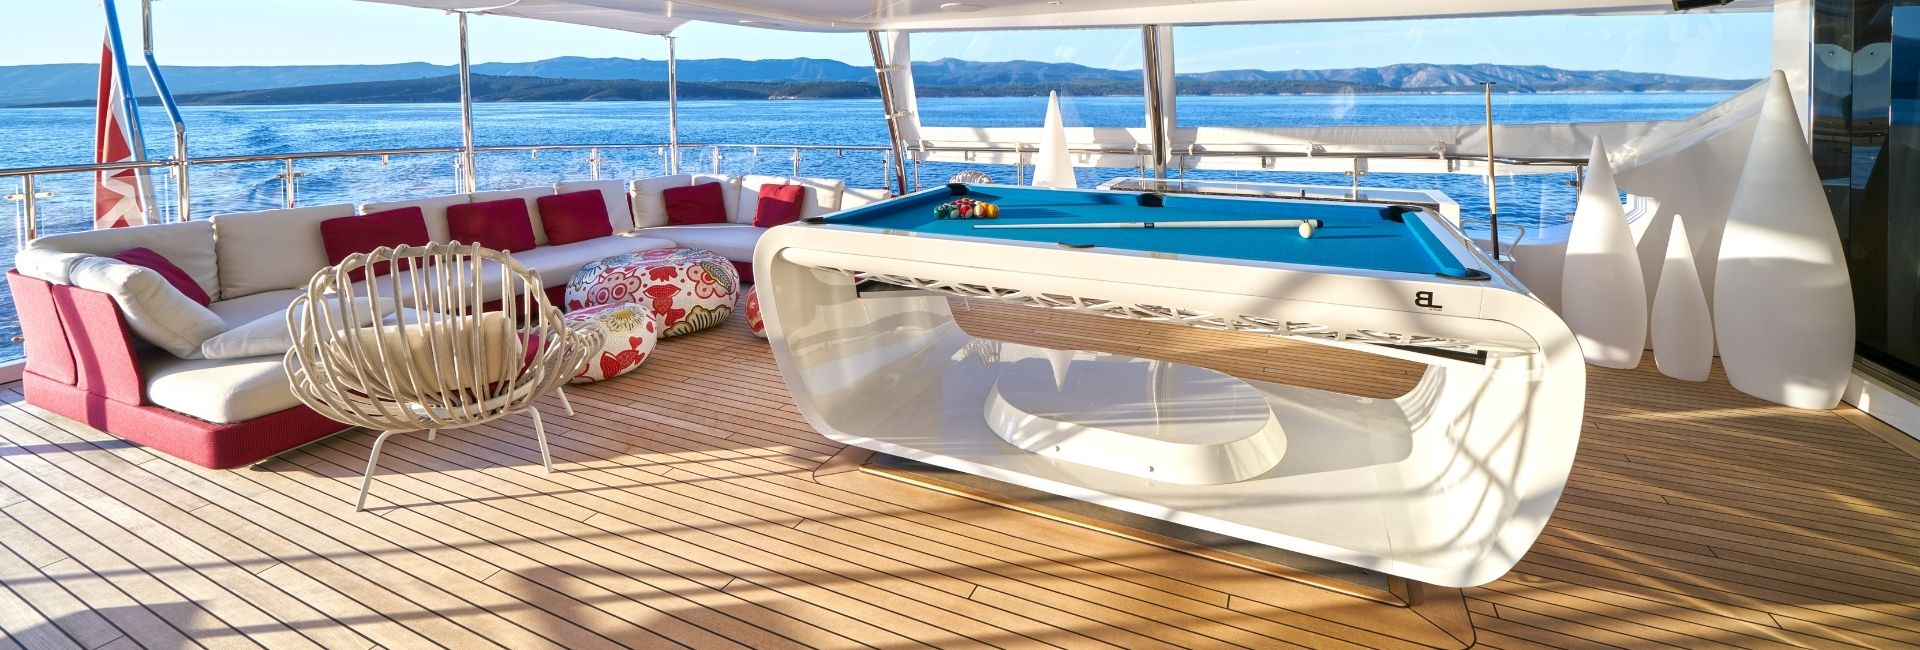 Install a pool table on yacht luxury - Billards Toulet